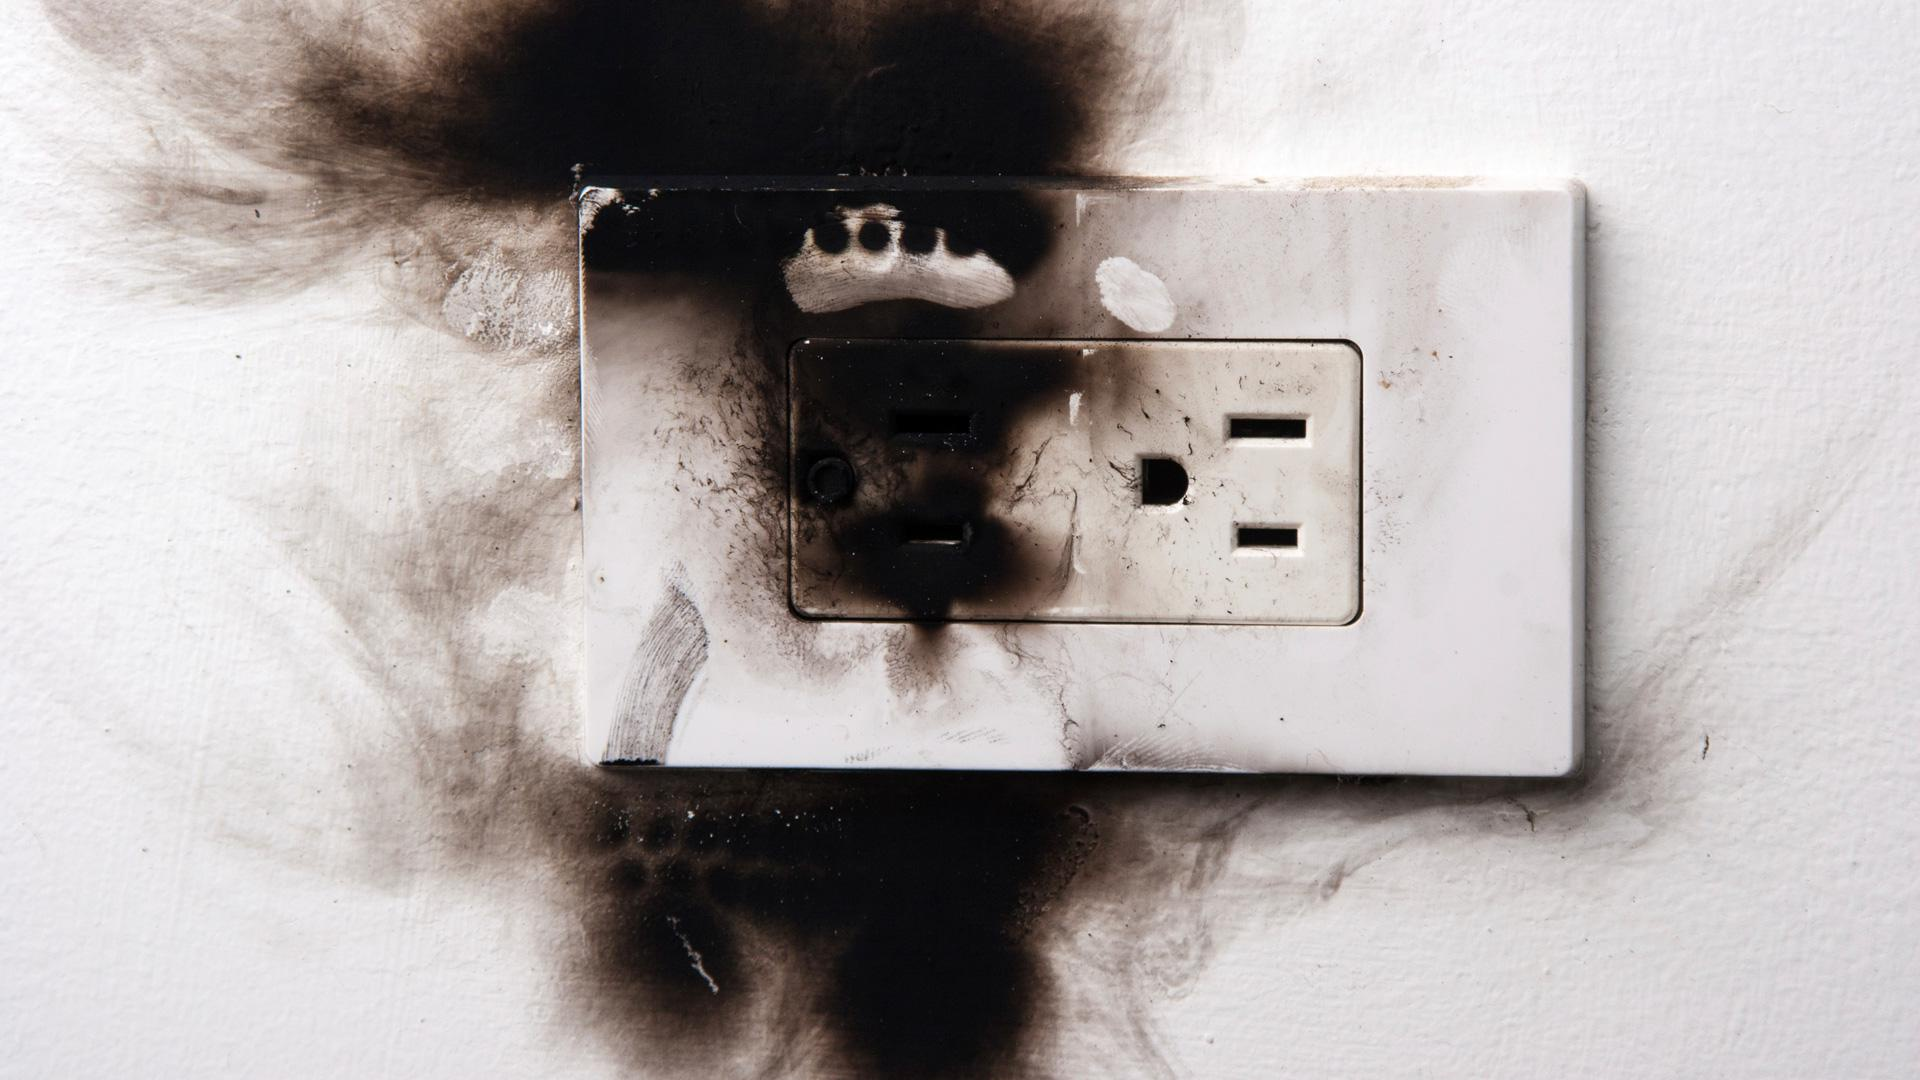 Could your electrical outlet set your home on fire?